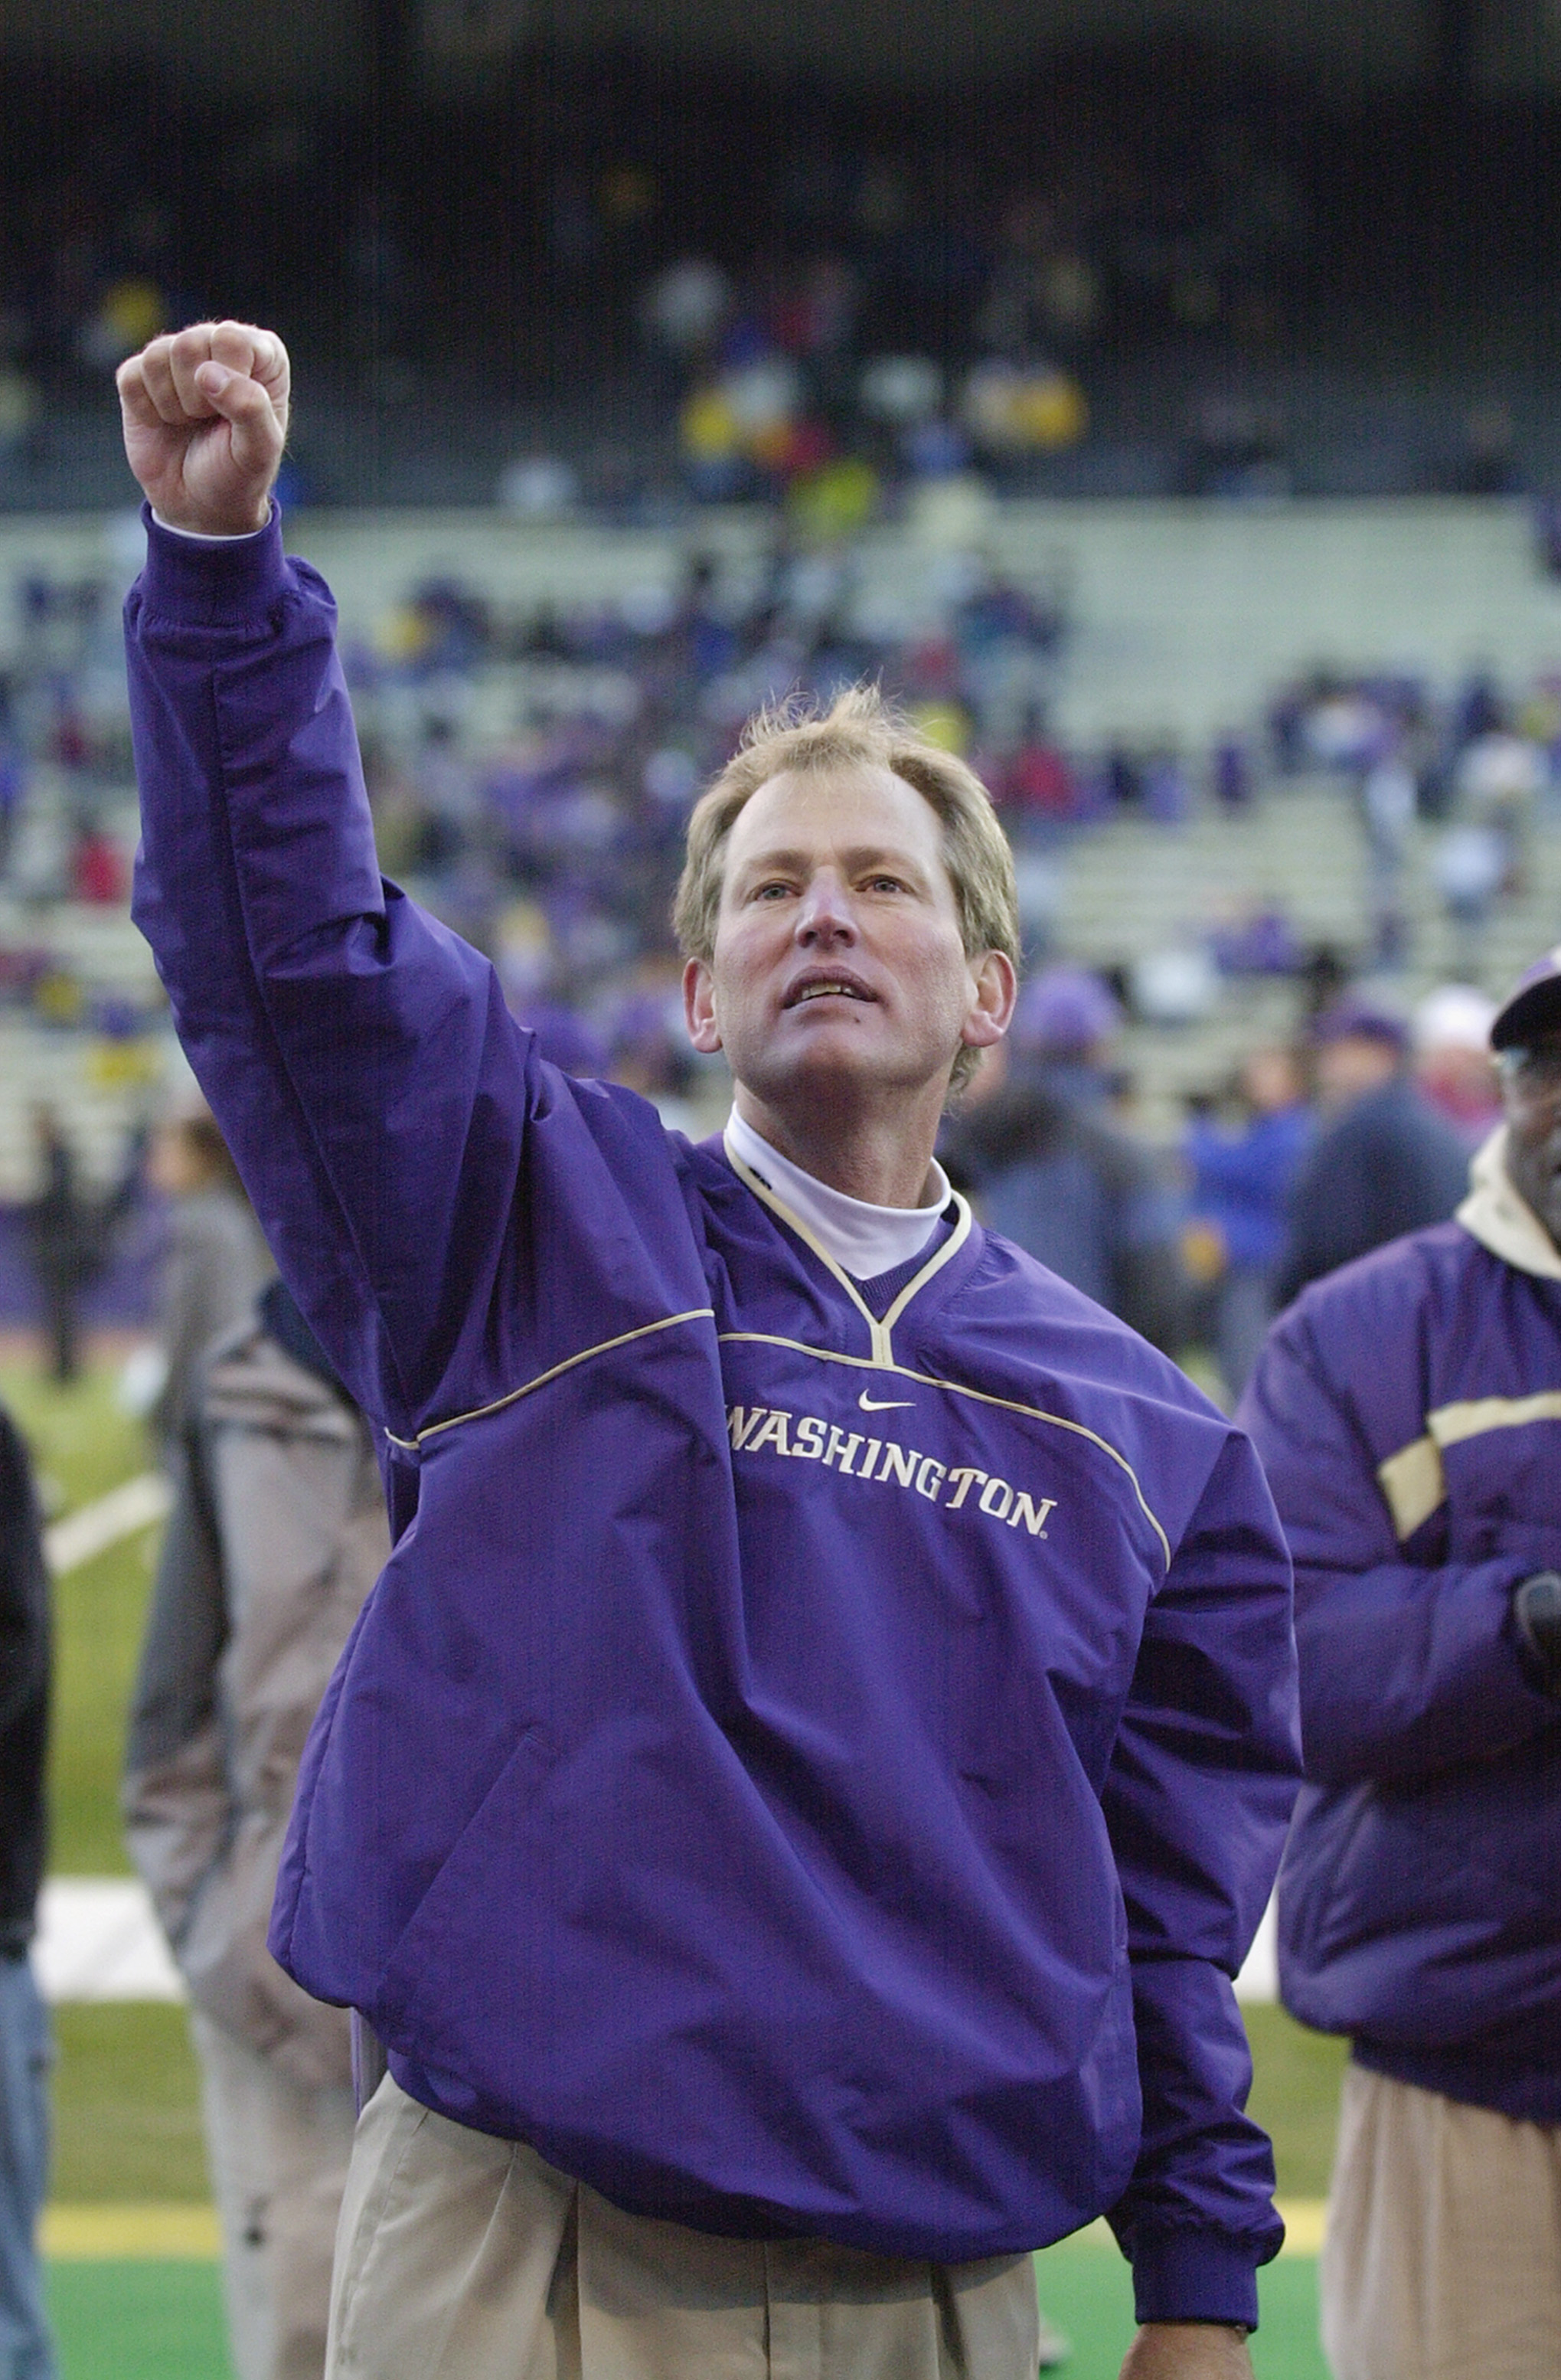 SEATTLE - NOVEMBER 17:  Head coach Rick Neuheisel of the Washington Huskies celebrates after winning the Pac-10 Conference football game against the Washington State Cougars on November 17, 2001 at Husky Stadium in Seattle, Washington. The Huskies defeate